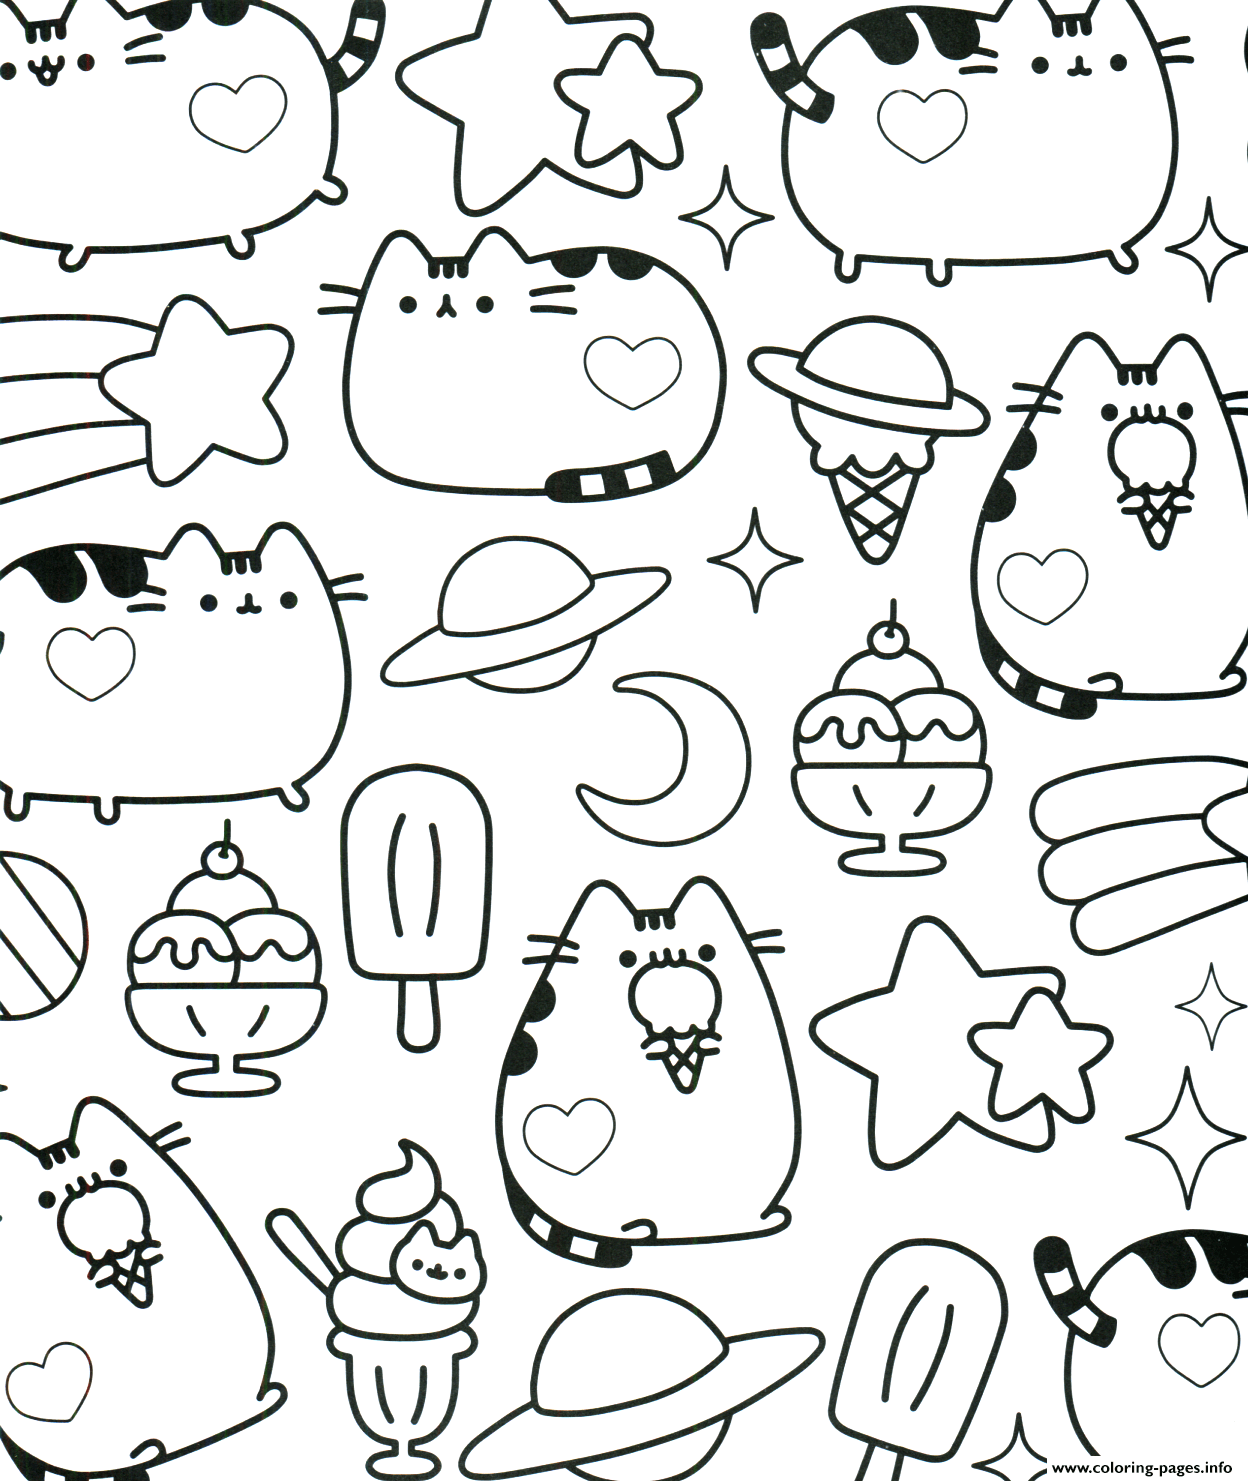 pusheen coloring pages to print Kawaii Pusheen Coloring Pages Printable pusheen coloring pages to print